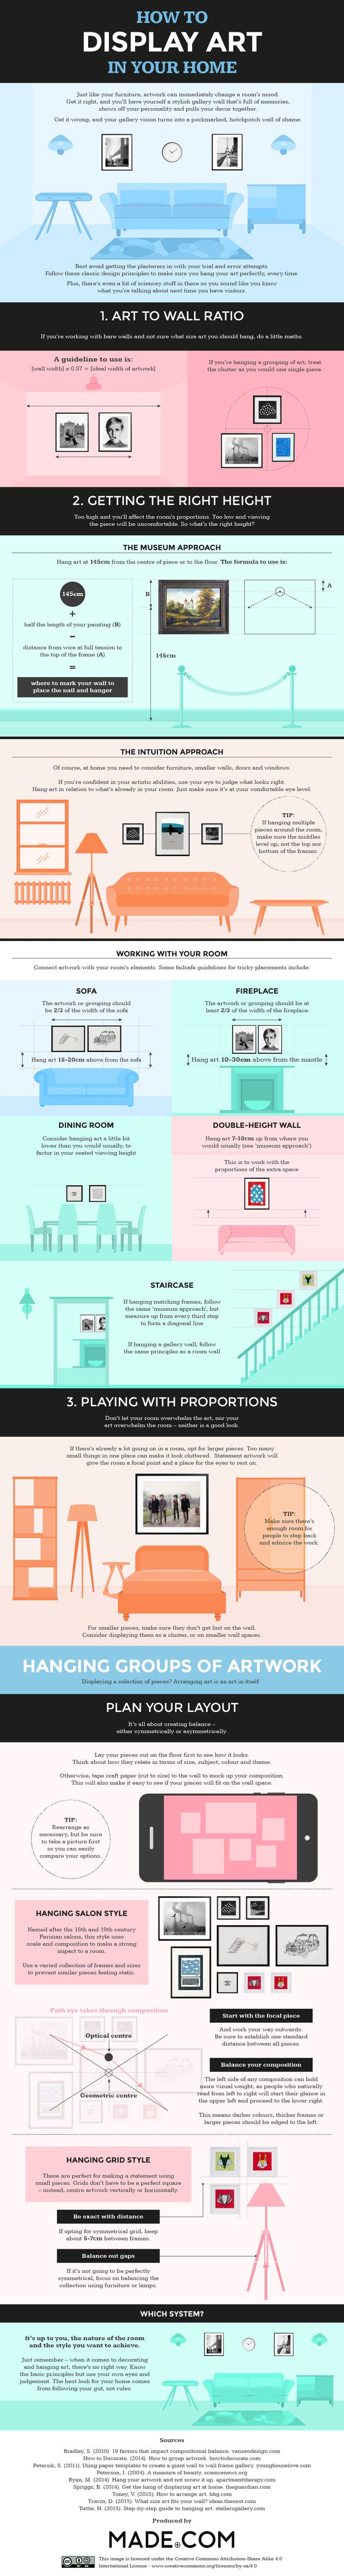 9 Interior-design rules to live by - SheKnows